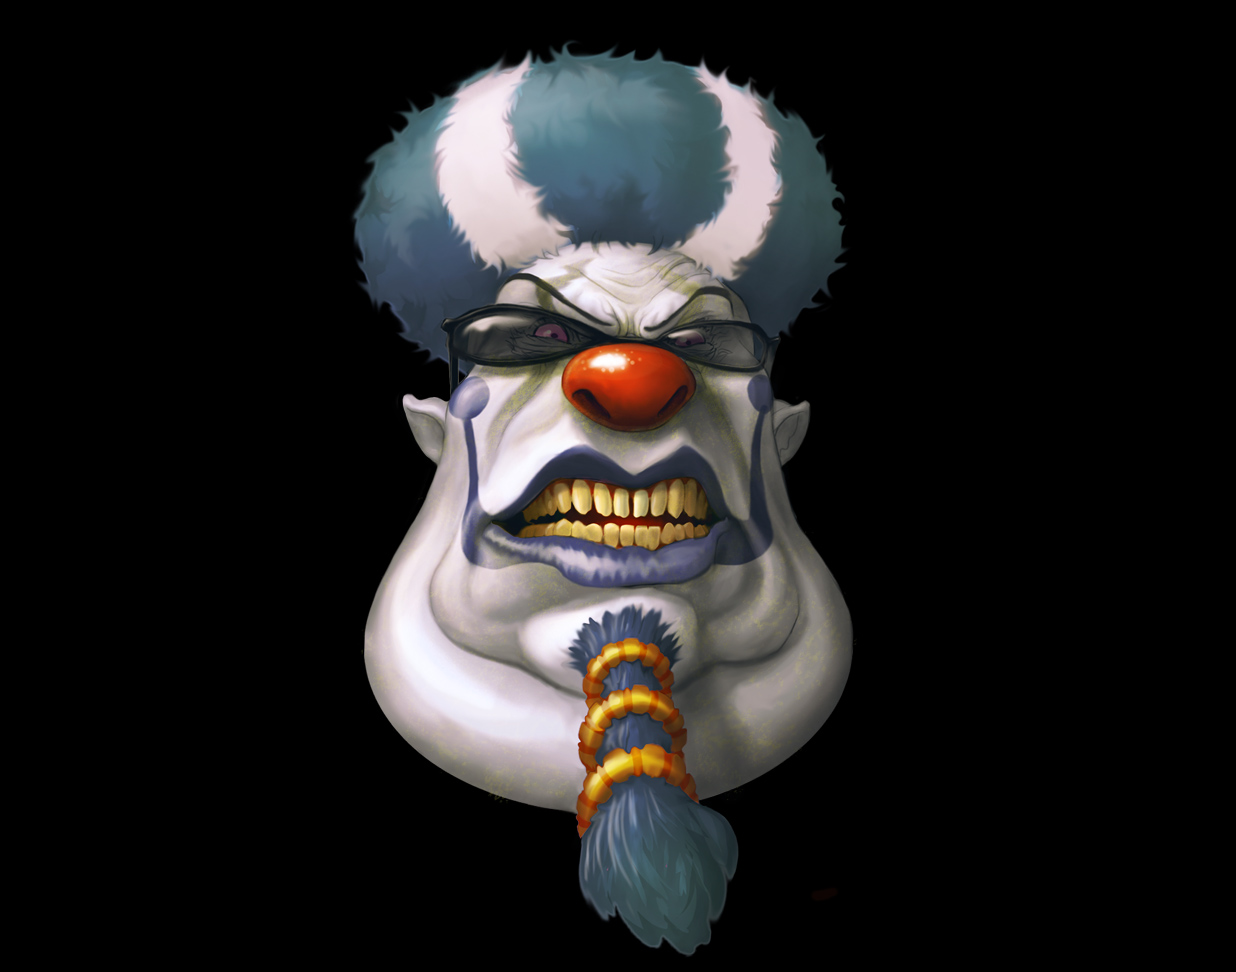 Scary clown wallpaper 1236x972